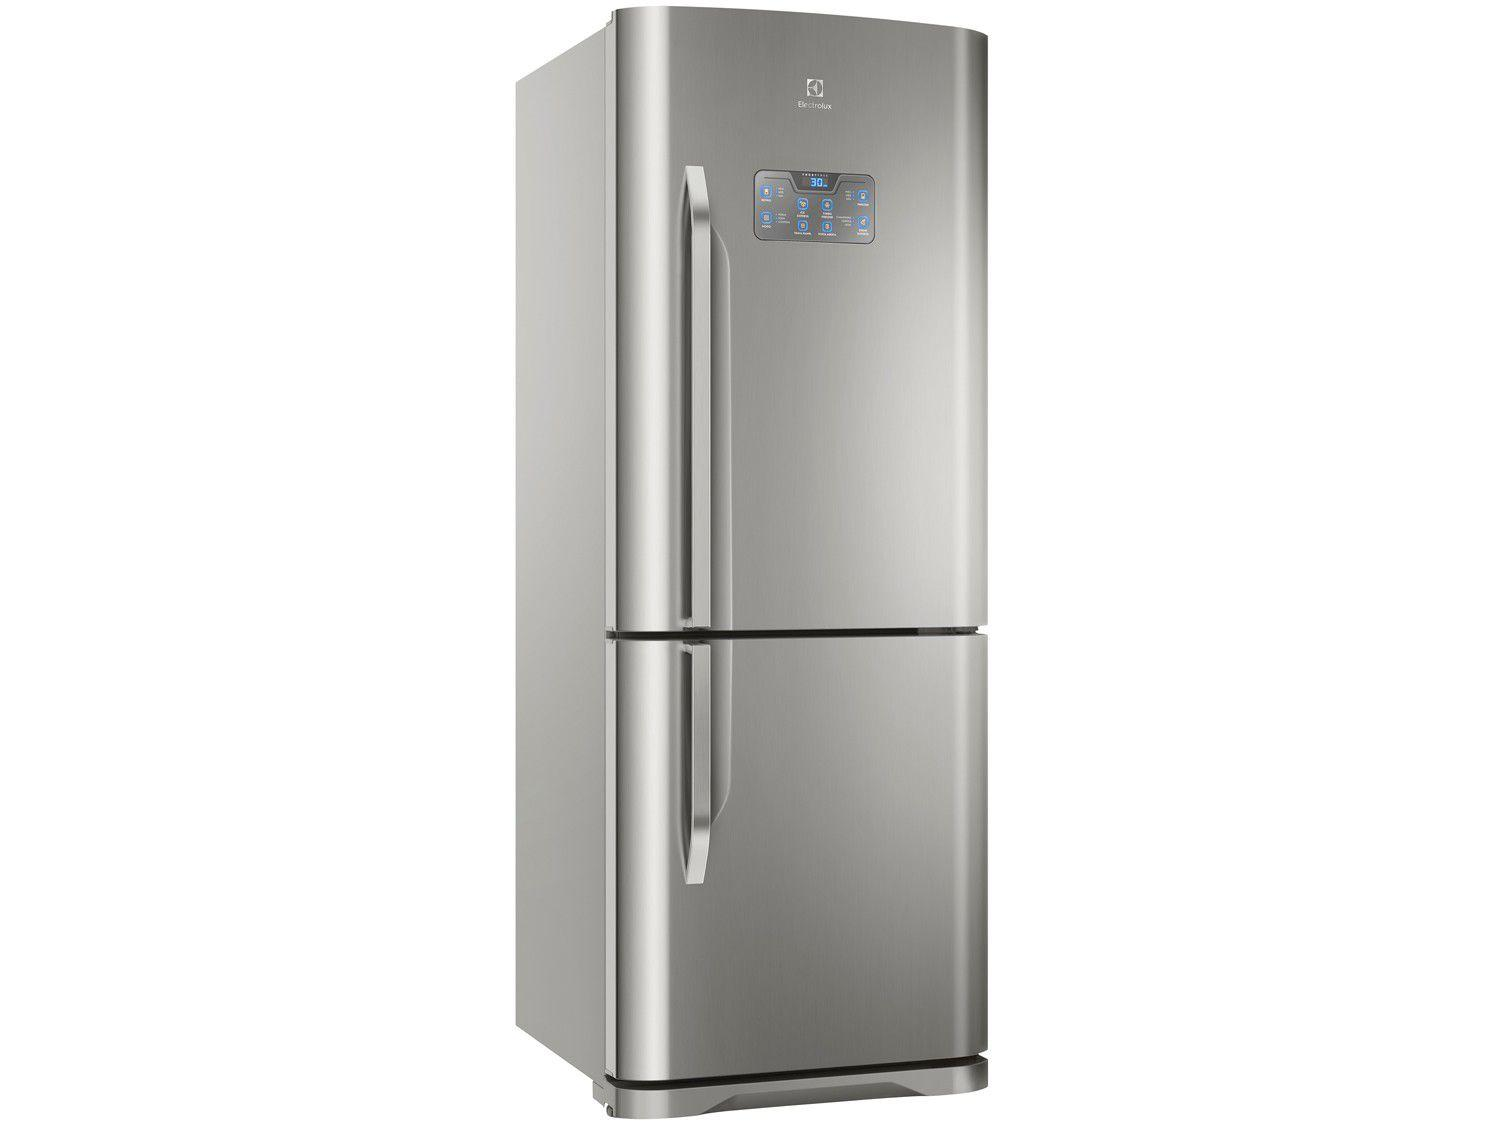 Geladeira/Refrigerador Electrolux Frost Free Inox - Inverse 454L Painel Blue Touch DB53X